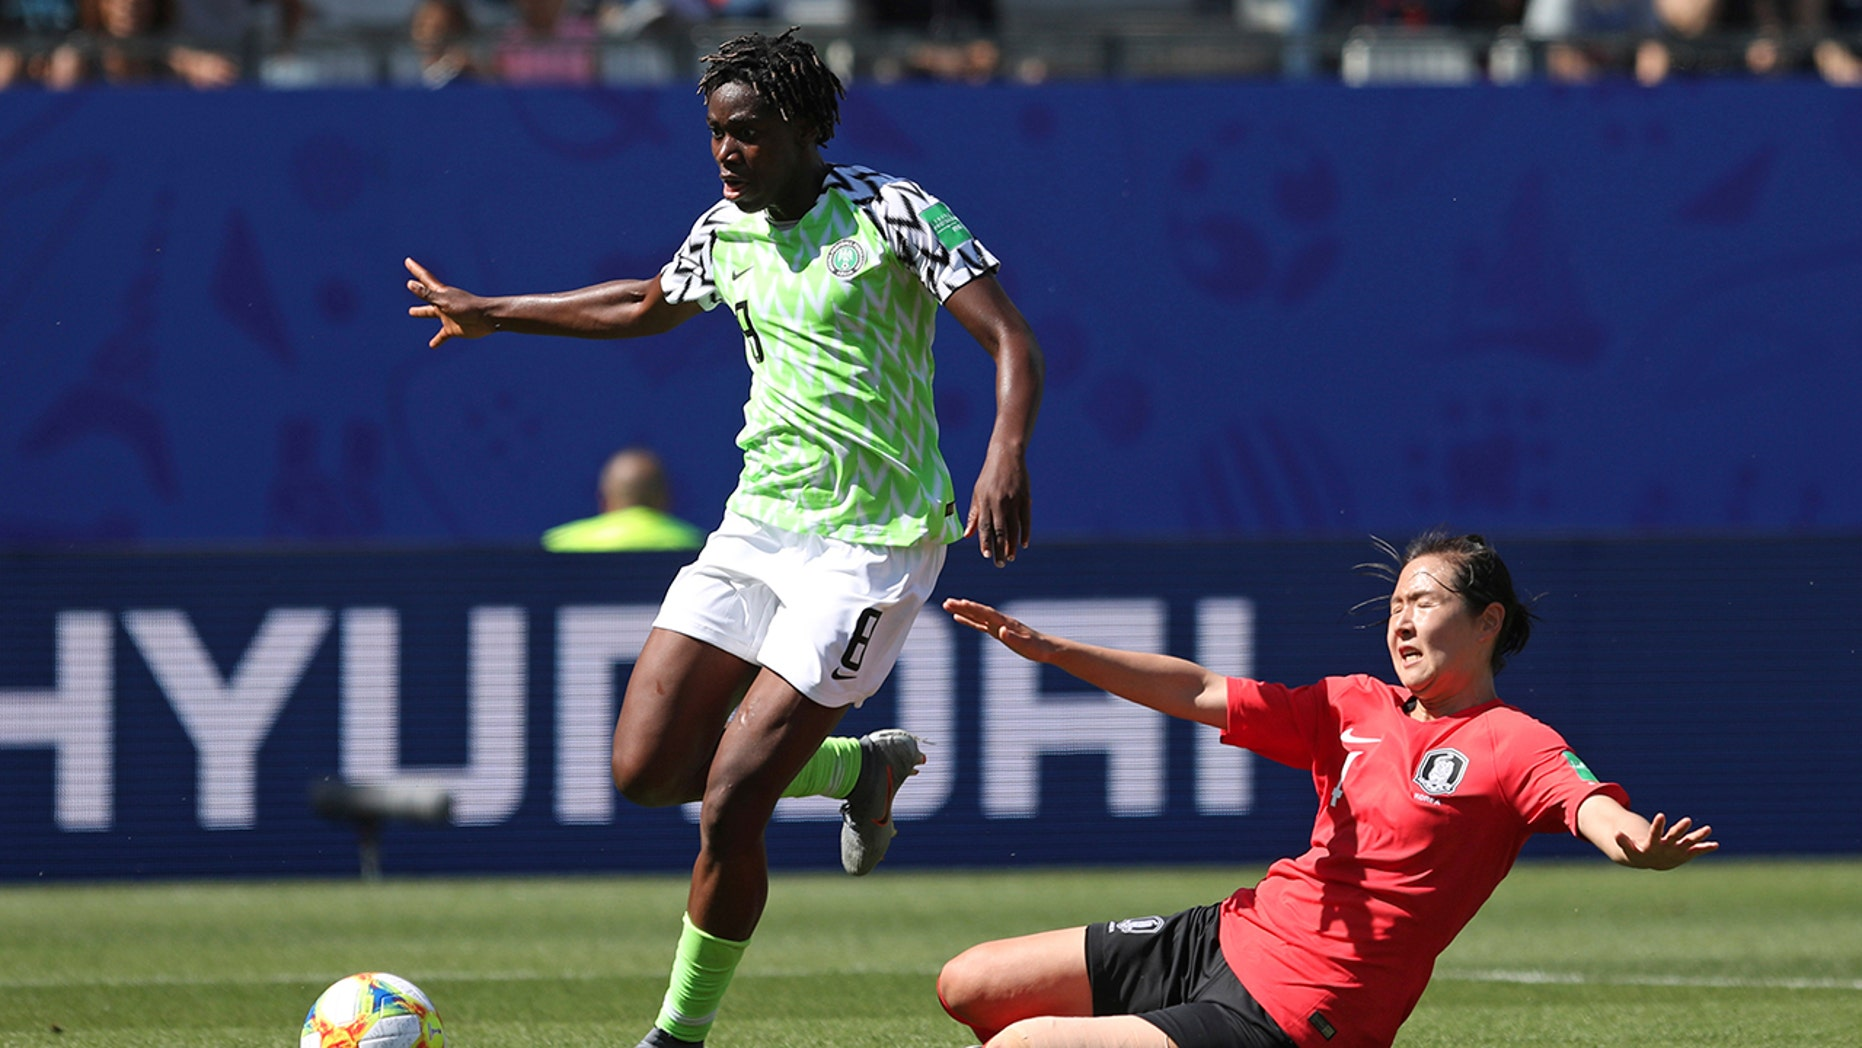 Nigeria's Asisat Oshoala gets away from South Korea's Hwang Bo-ram on her way to scoring her side's second goal during the Women's World Cup Group A soccer match between Nigeria and South Korea in Grenoble, France, Wednesday June 12, 2019.(AP Photo/Laurent Cipriani)